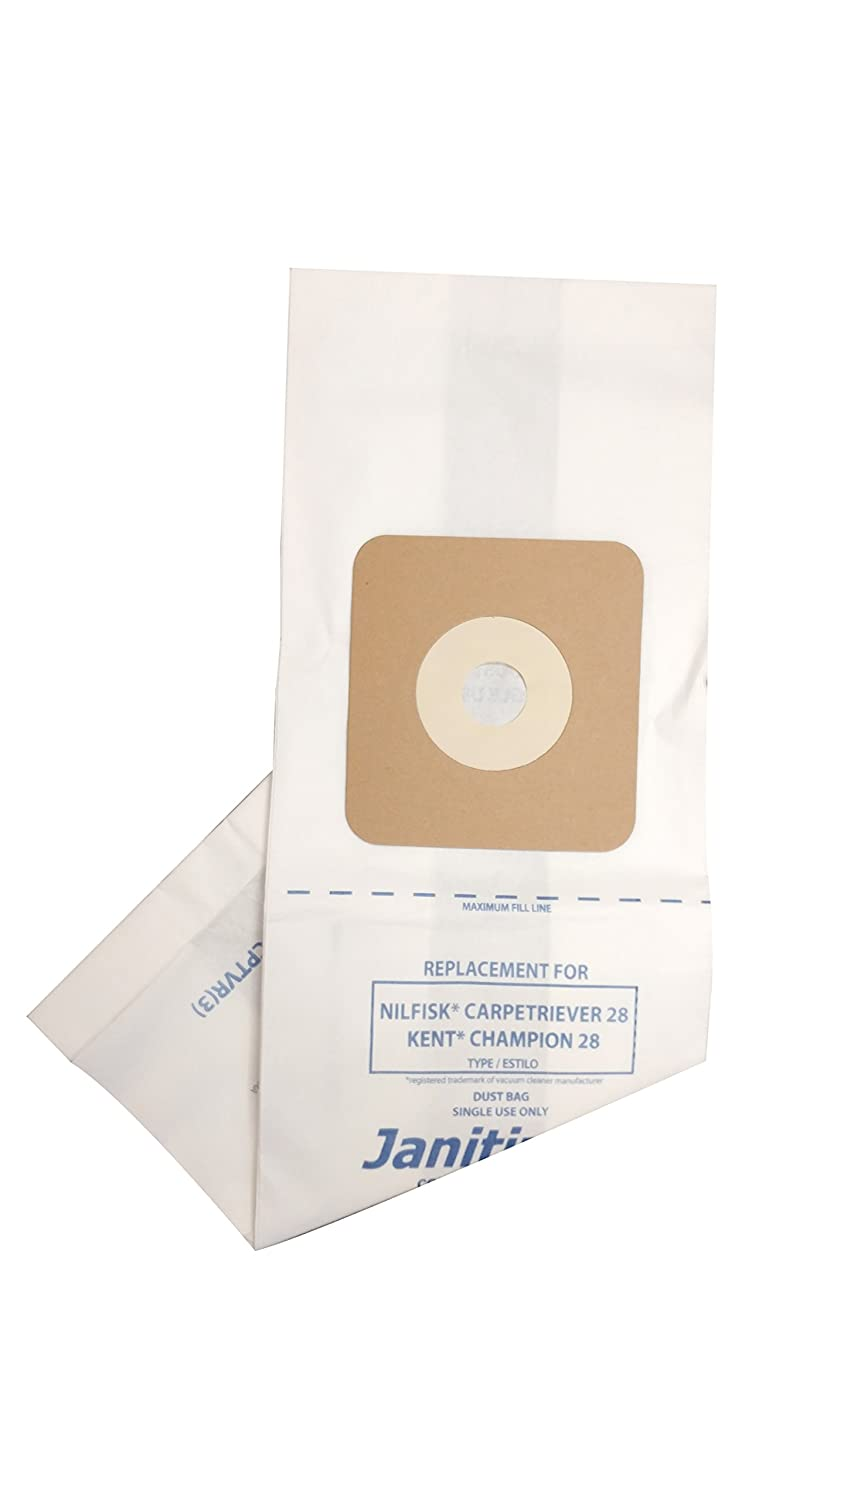 Janitized JAN-NFCPTVR(3) Paper Premium Replacement Commercial Vacuum Bag For Nilfisk Carpetriever 28, Euroclean Kent Champion 28 Vacuum Cleaners (Pack of 36)